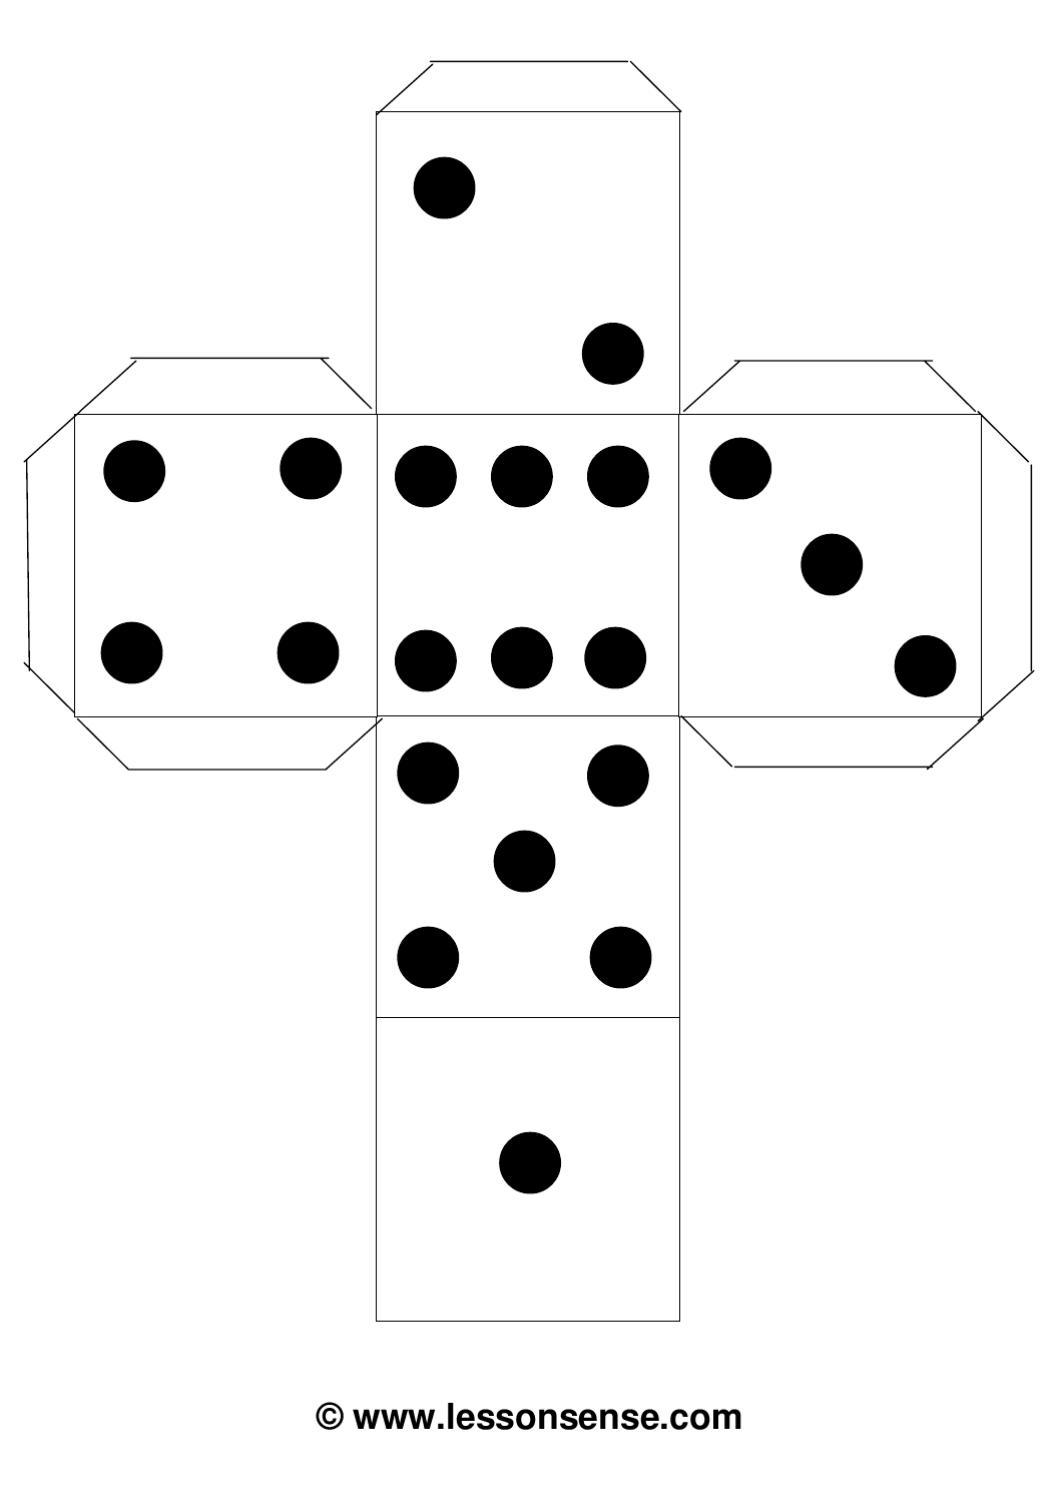 dice templates dice dots template by erin moore issuu dice templates